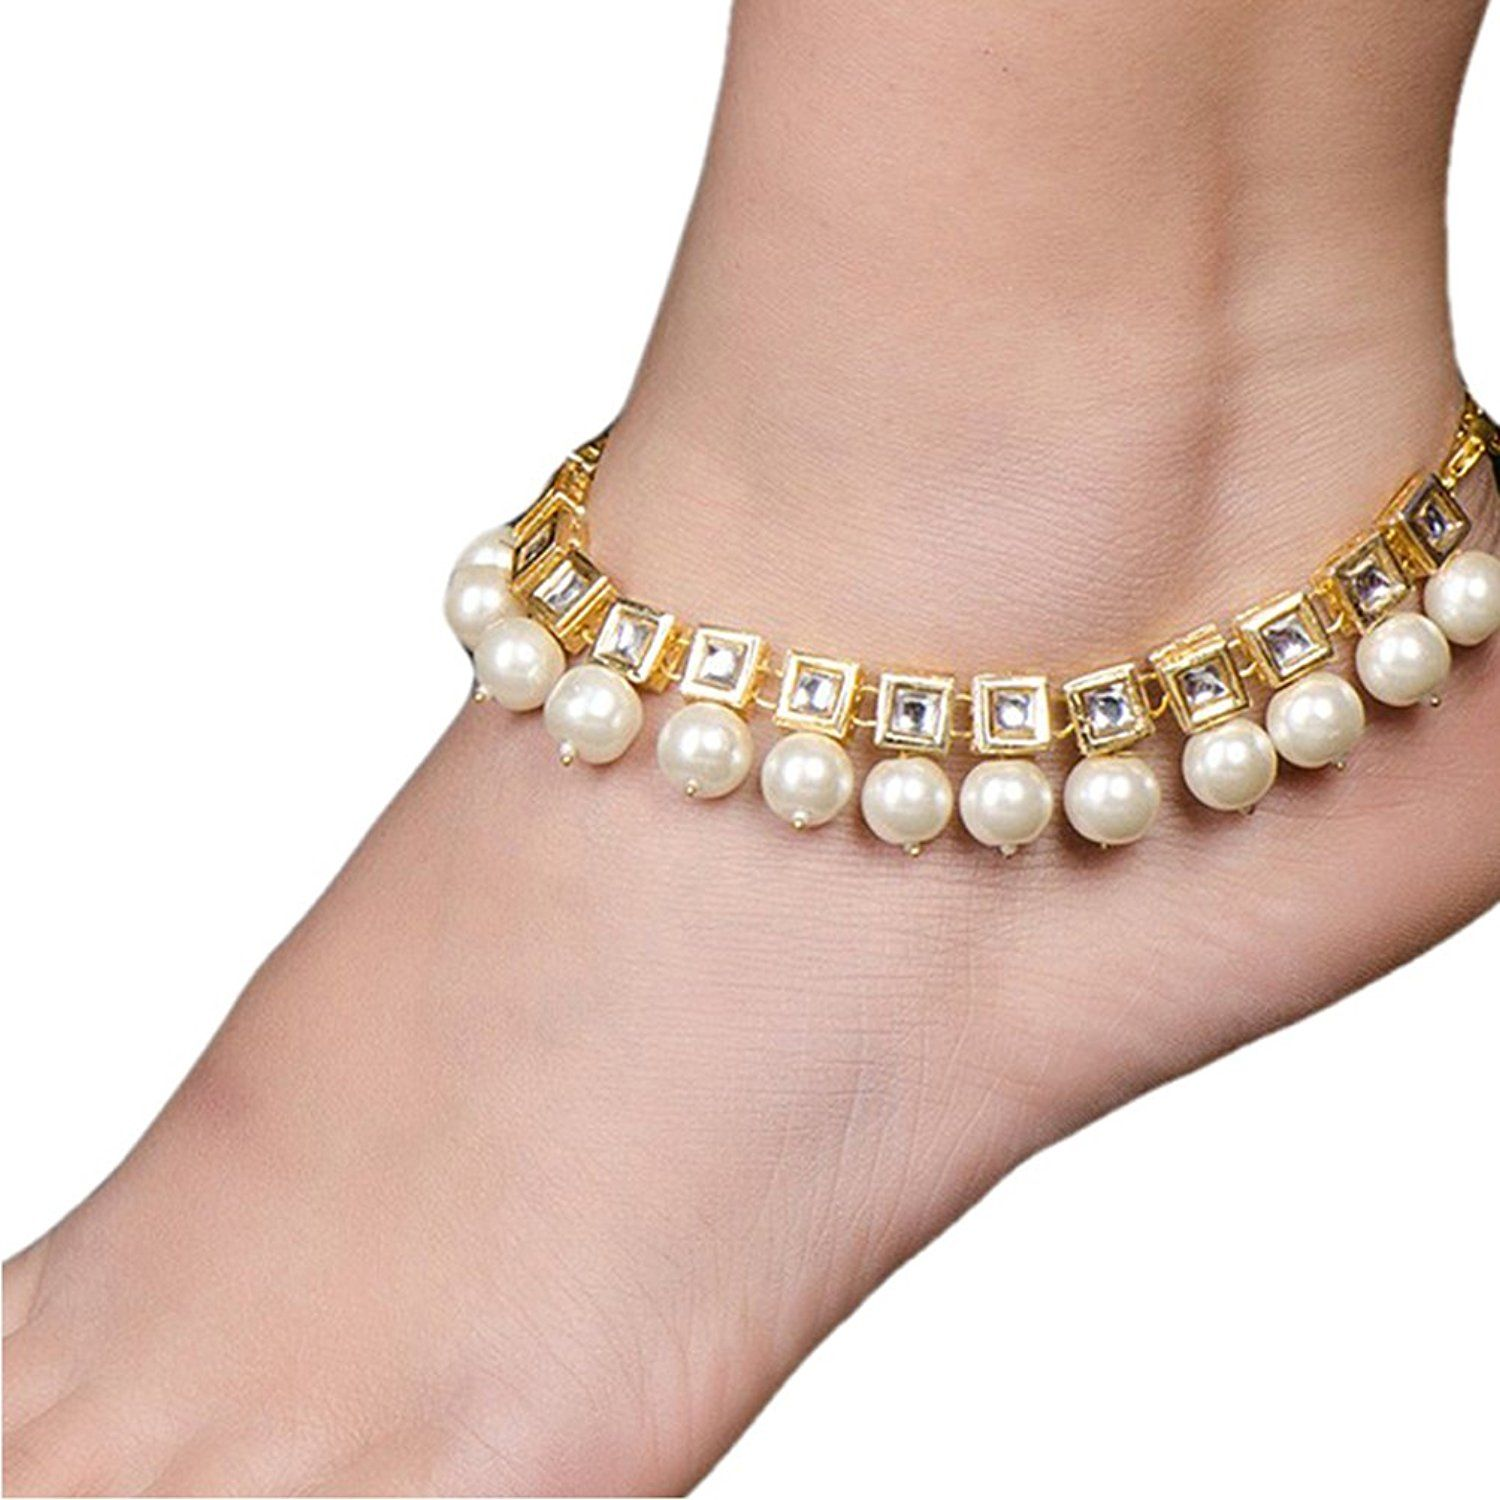 dbdd chain jewelry sandal foot crystal wedding accessory collections products with toe beach anklet rhinestone ring barefoot